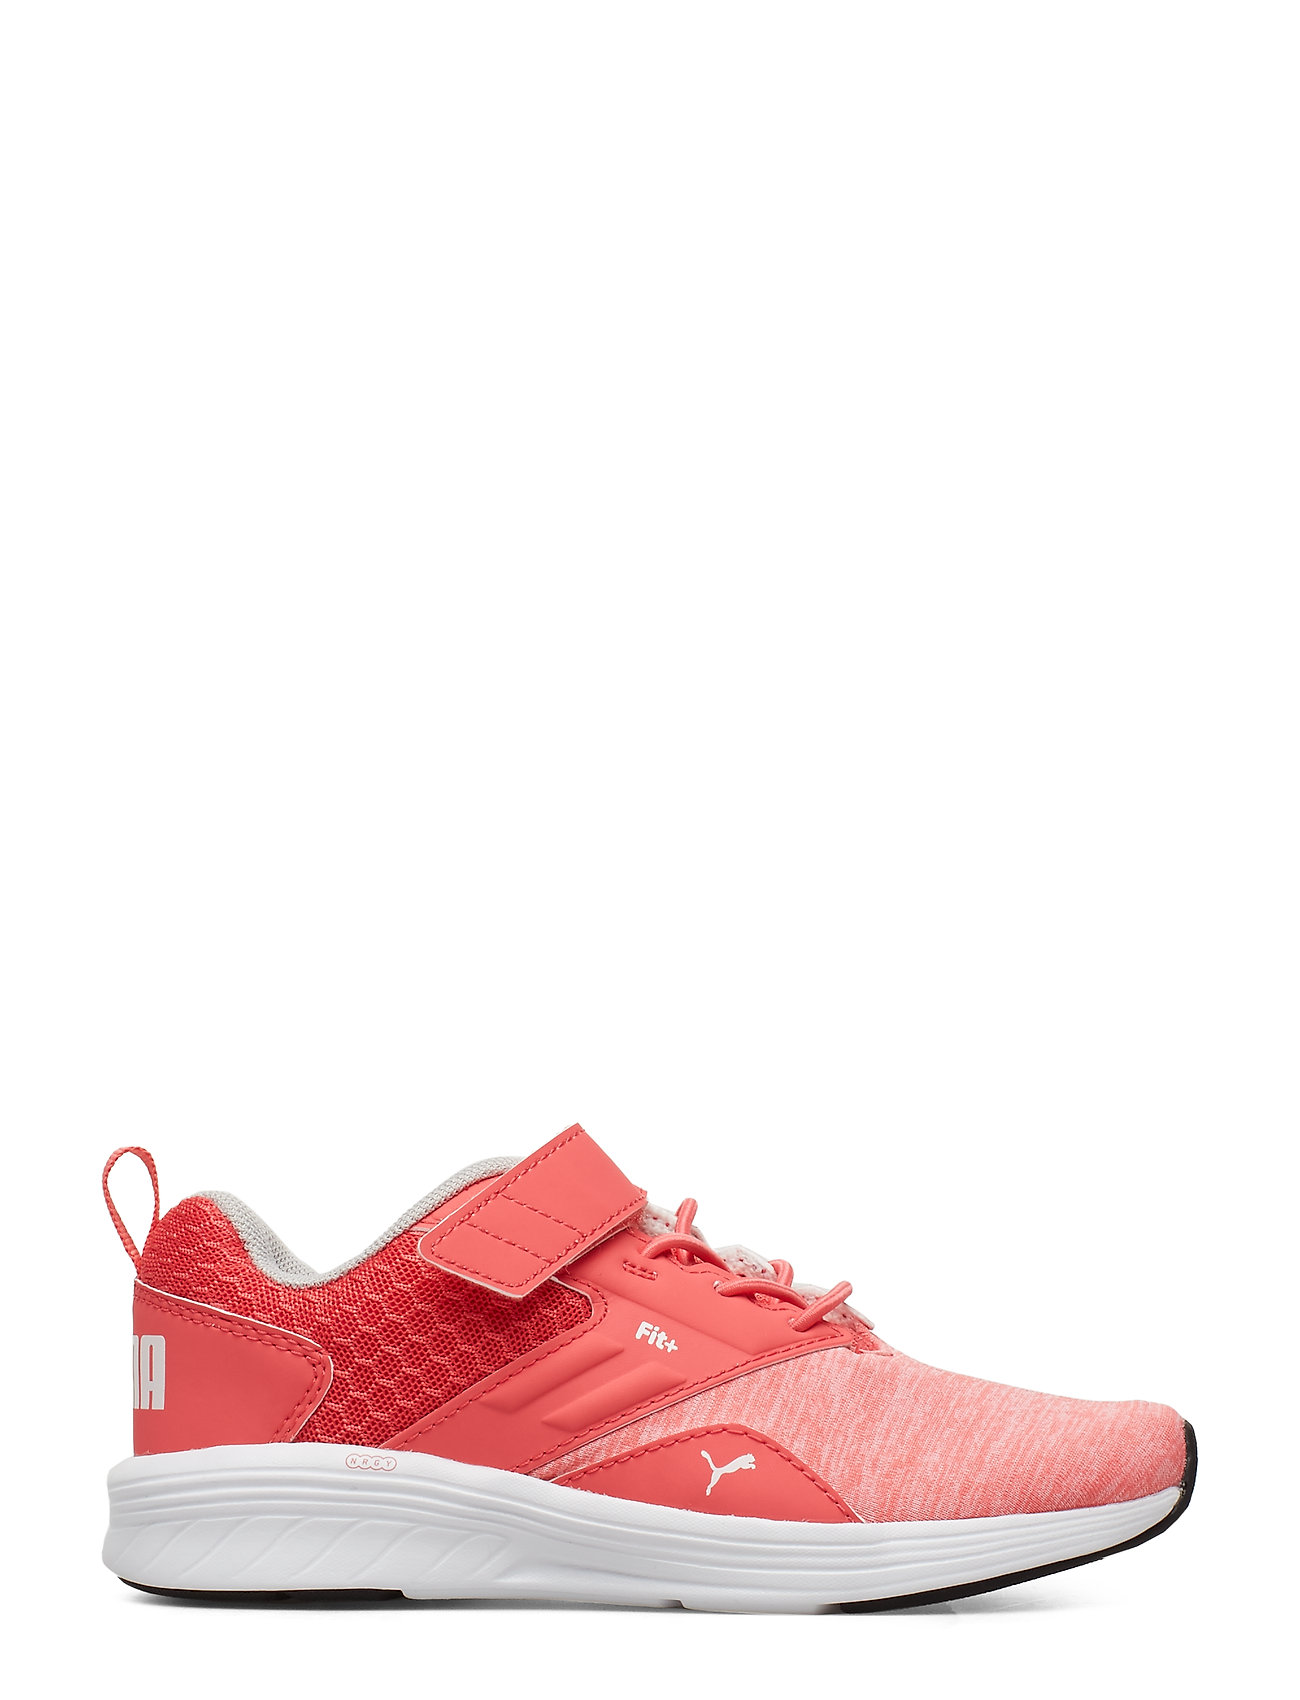 Nrgy Comet V Ps Shoes Sports Shoes Running/training Shoes Lyserød PUMA